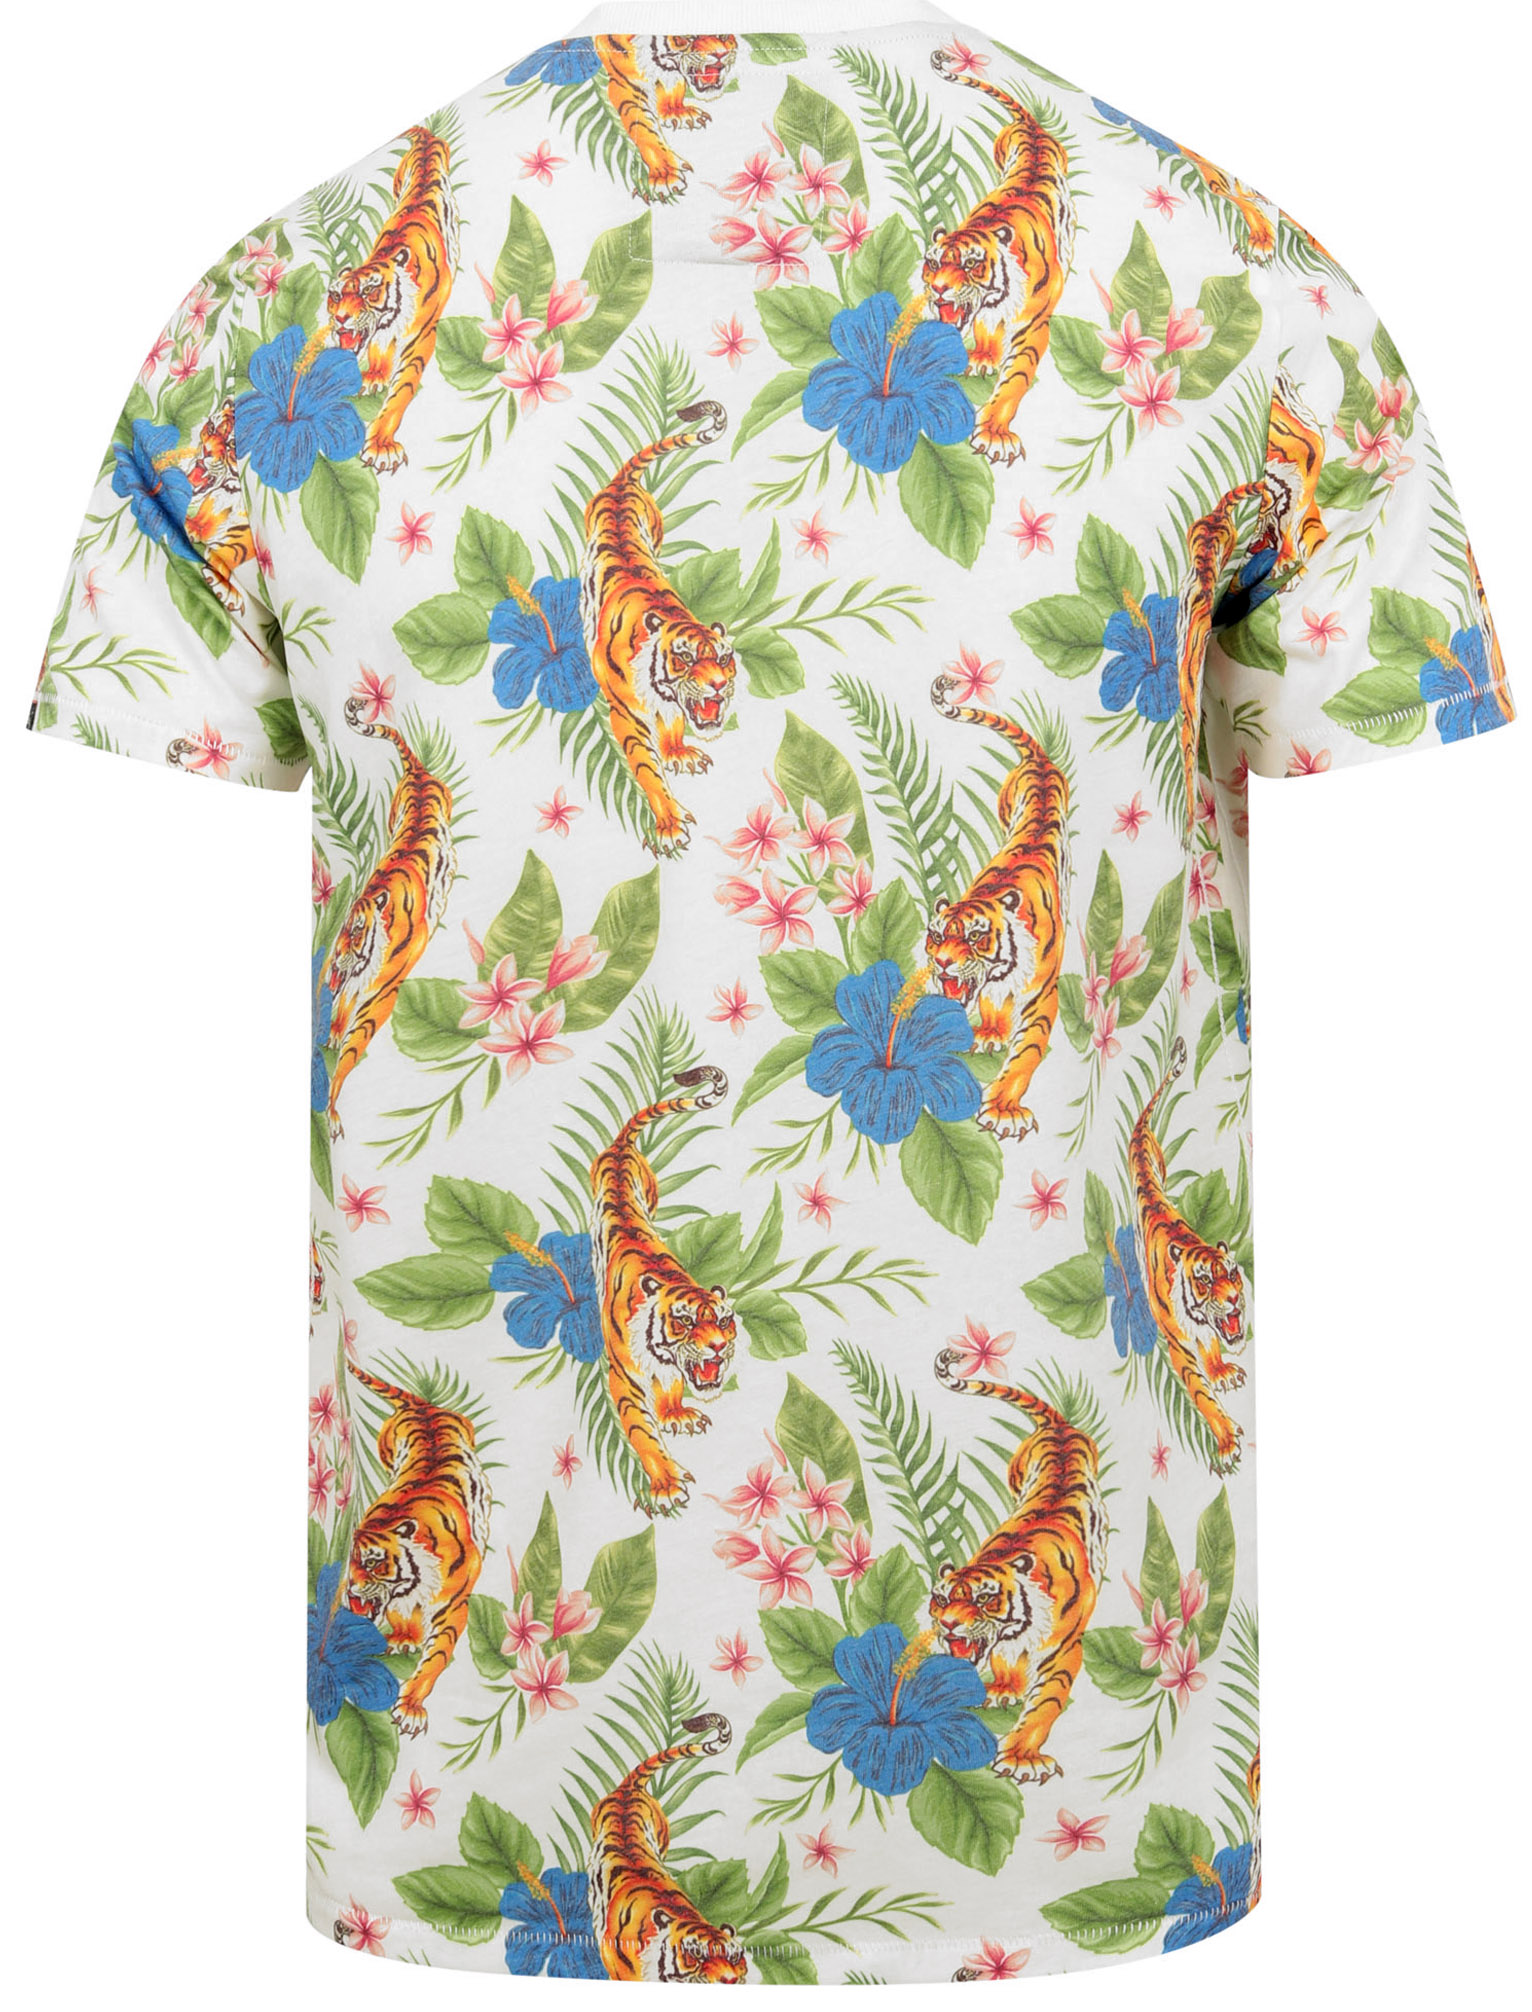 Tokyo-Laundry-Tropical-Print-Crew-Neck-T-Shirt-Hawaiian-Floral-Summer-Holiday thumbnail 25